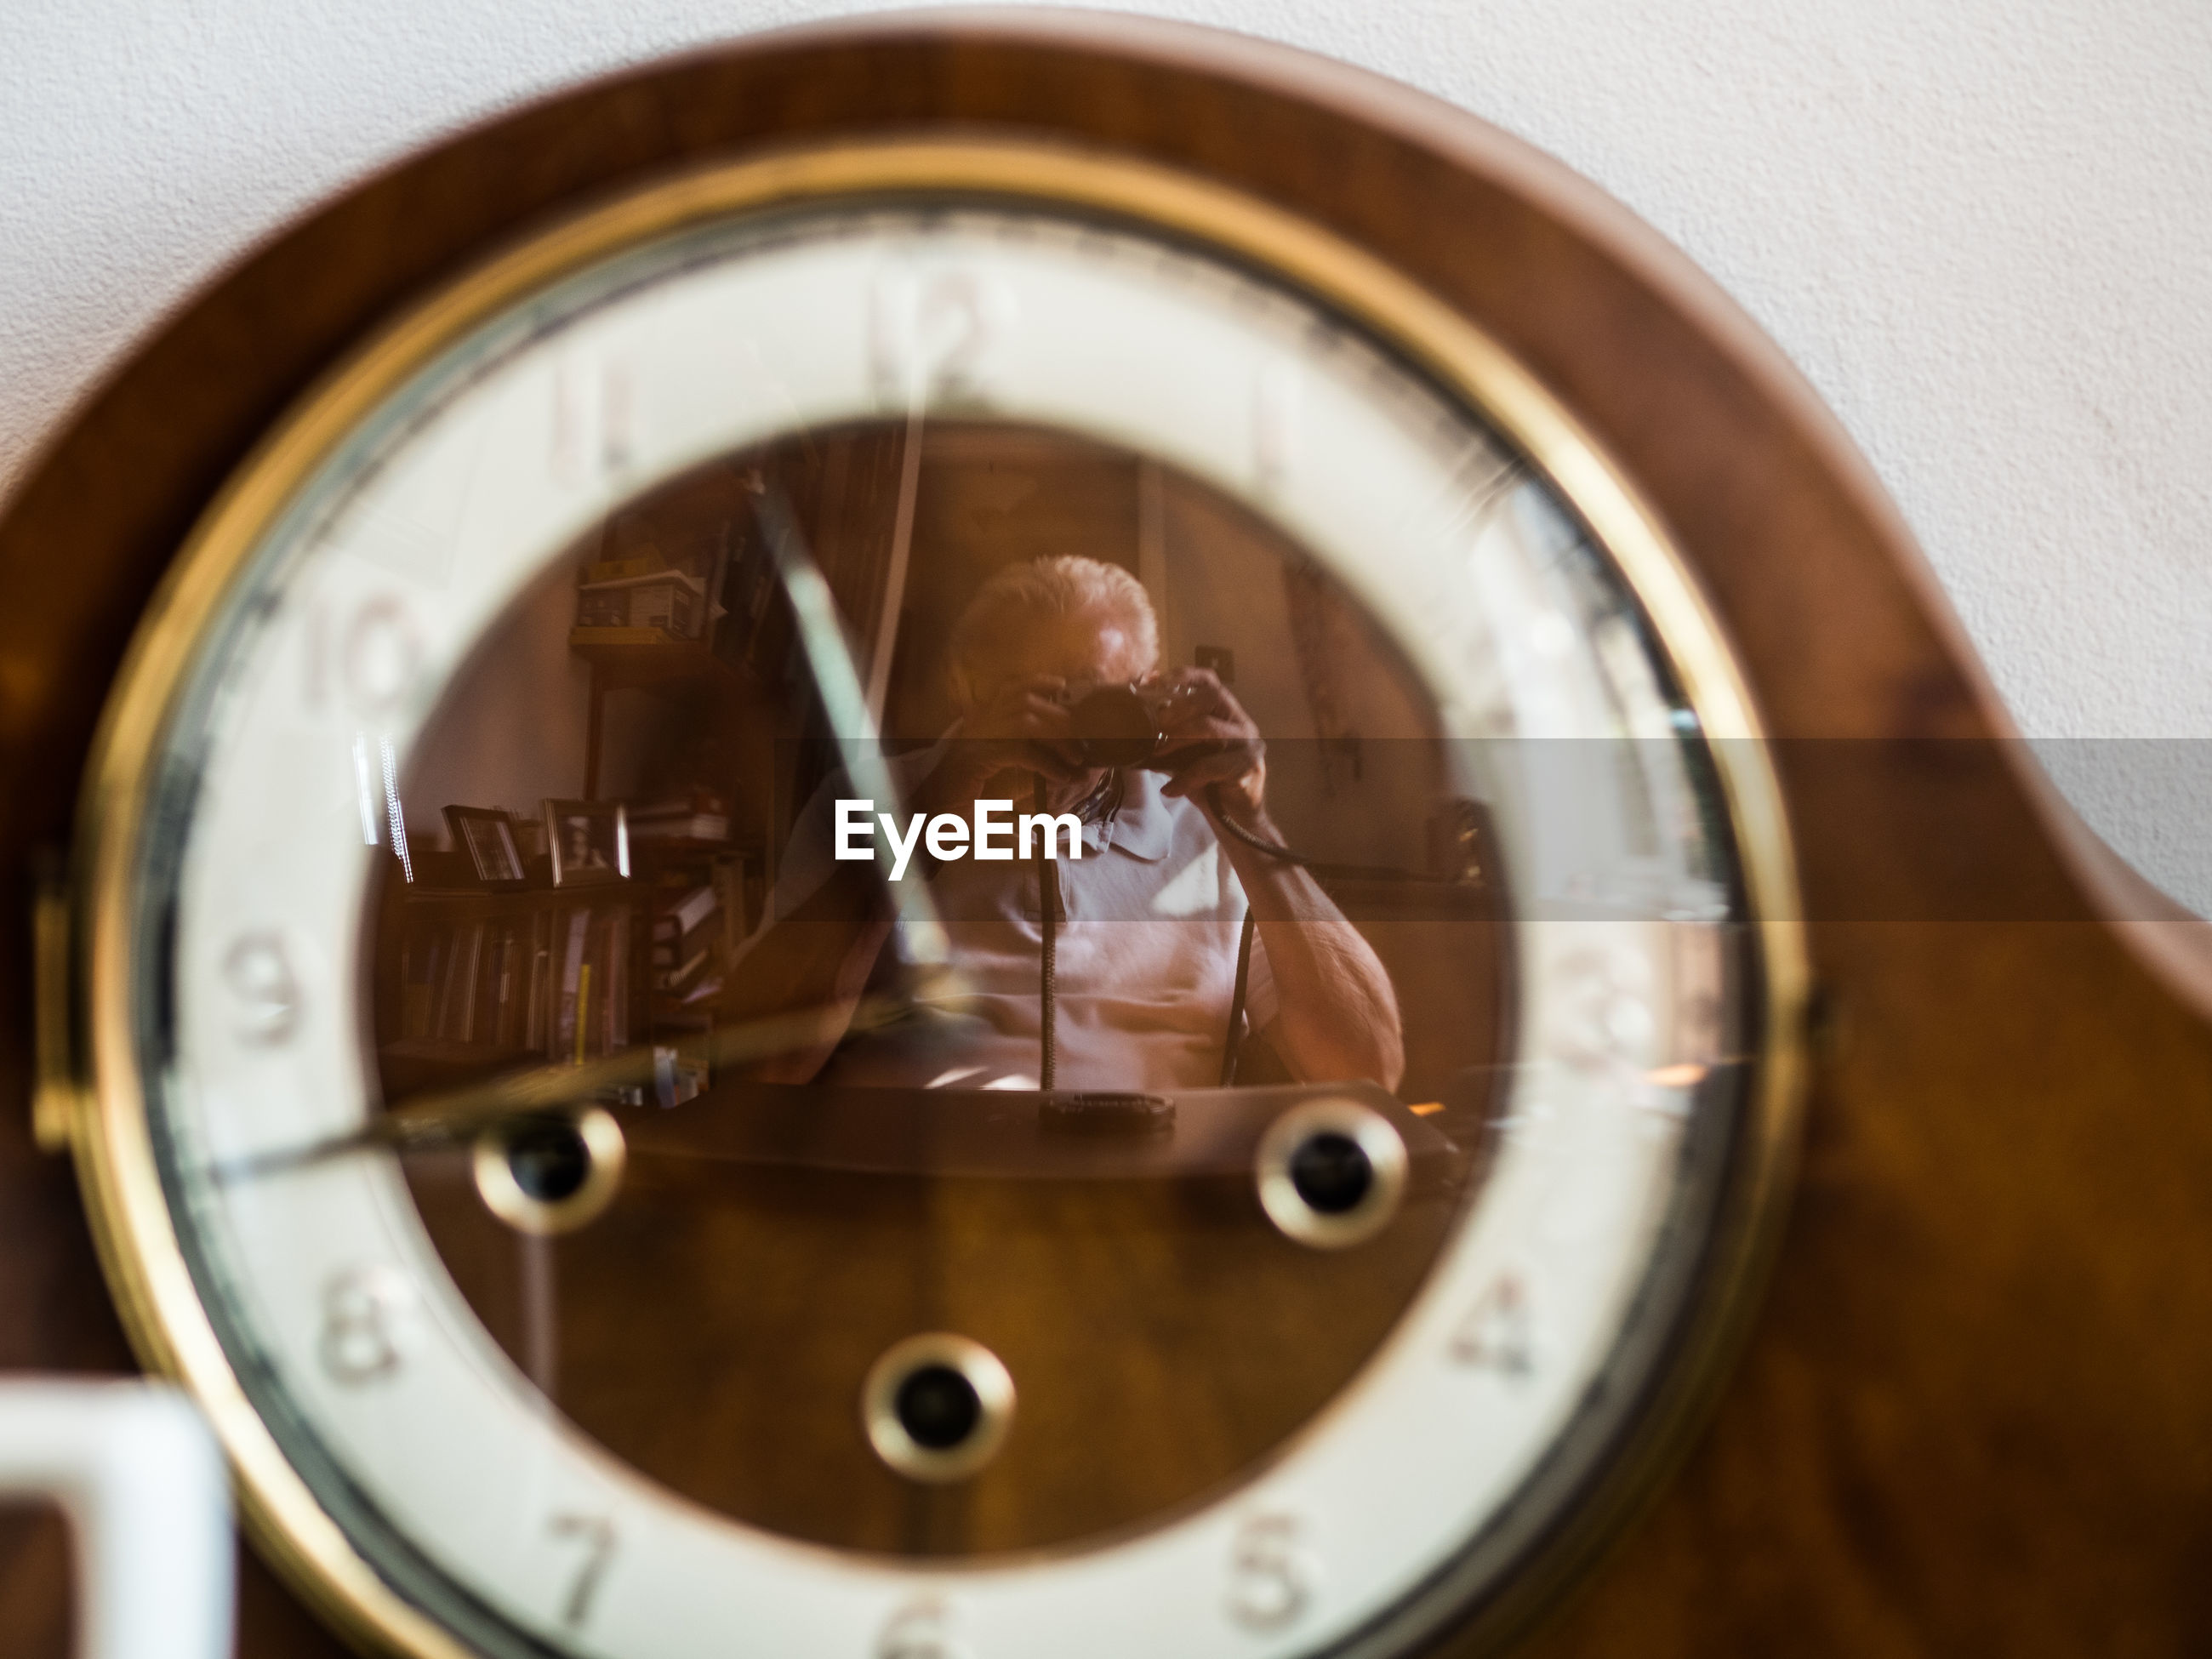 Senior man photographing with camera seen in clock at home